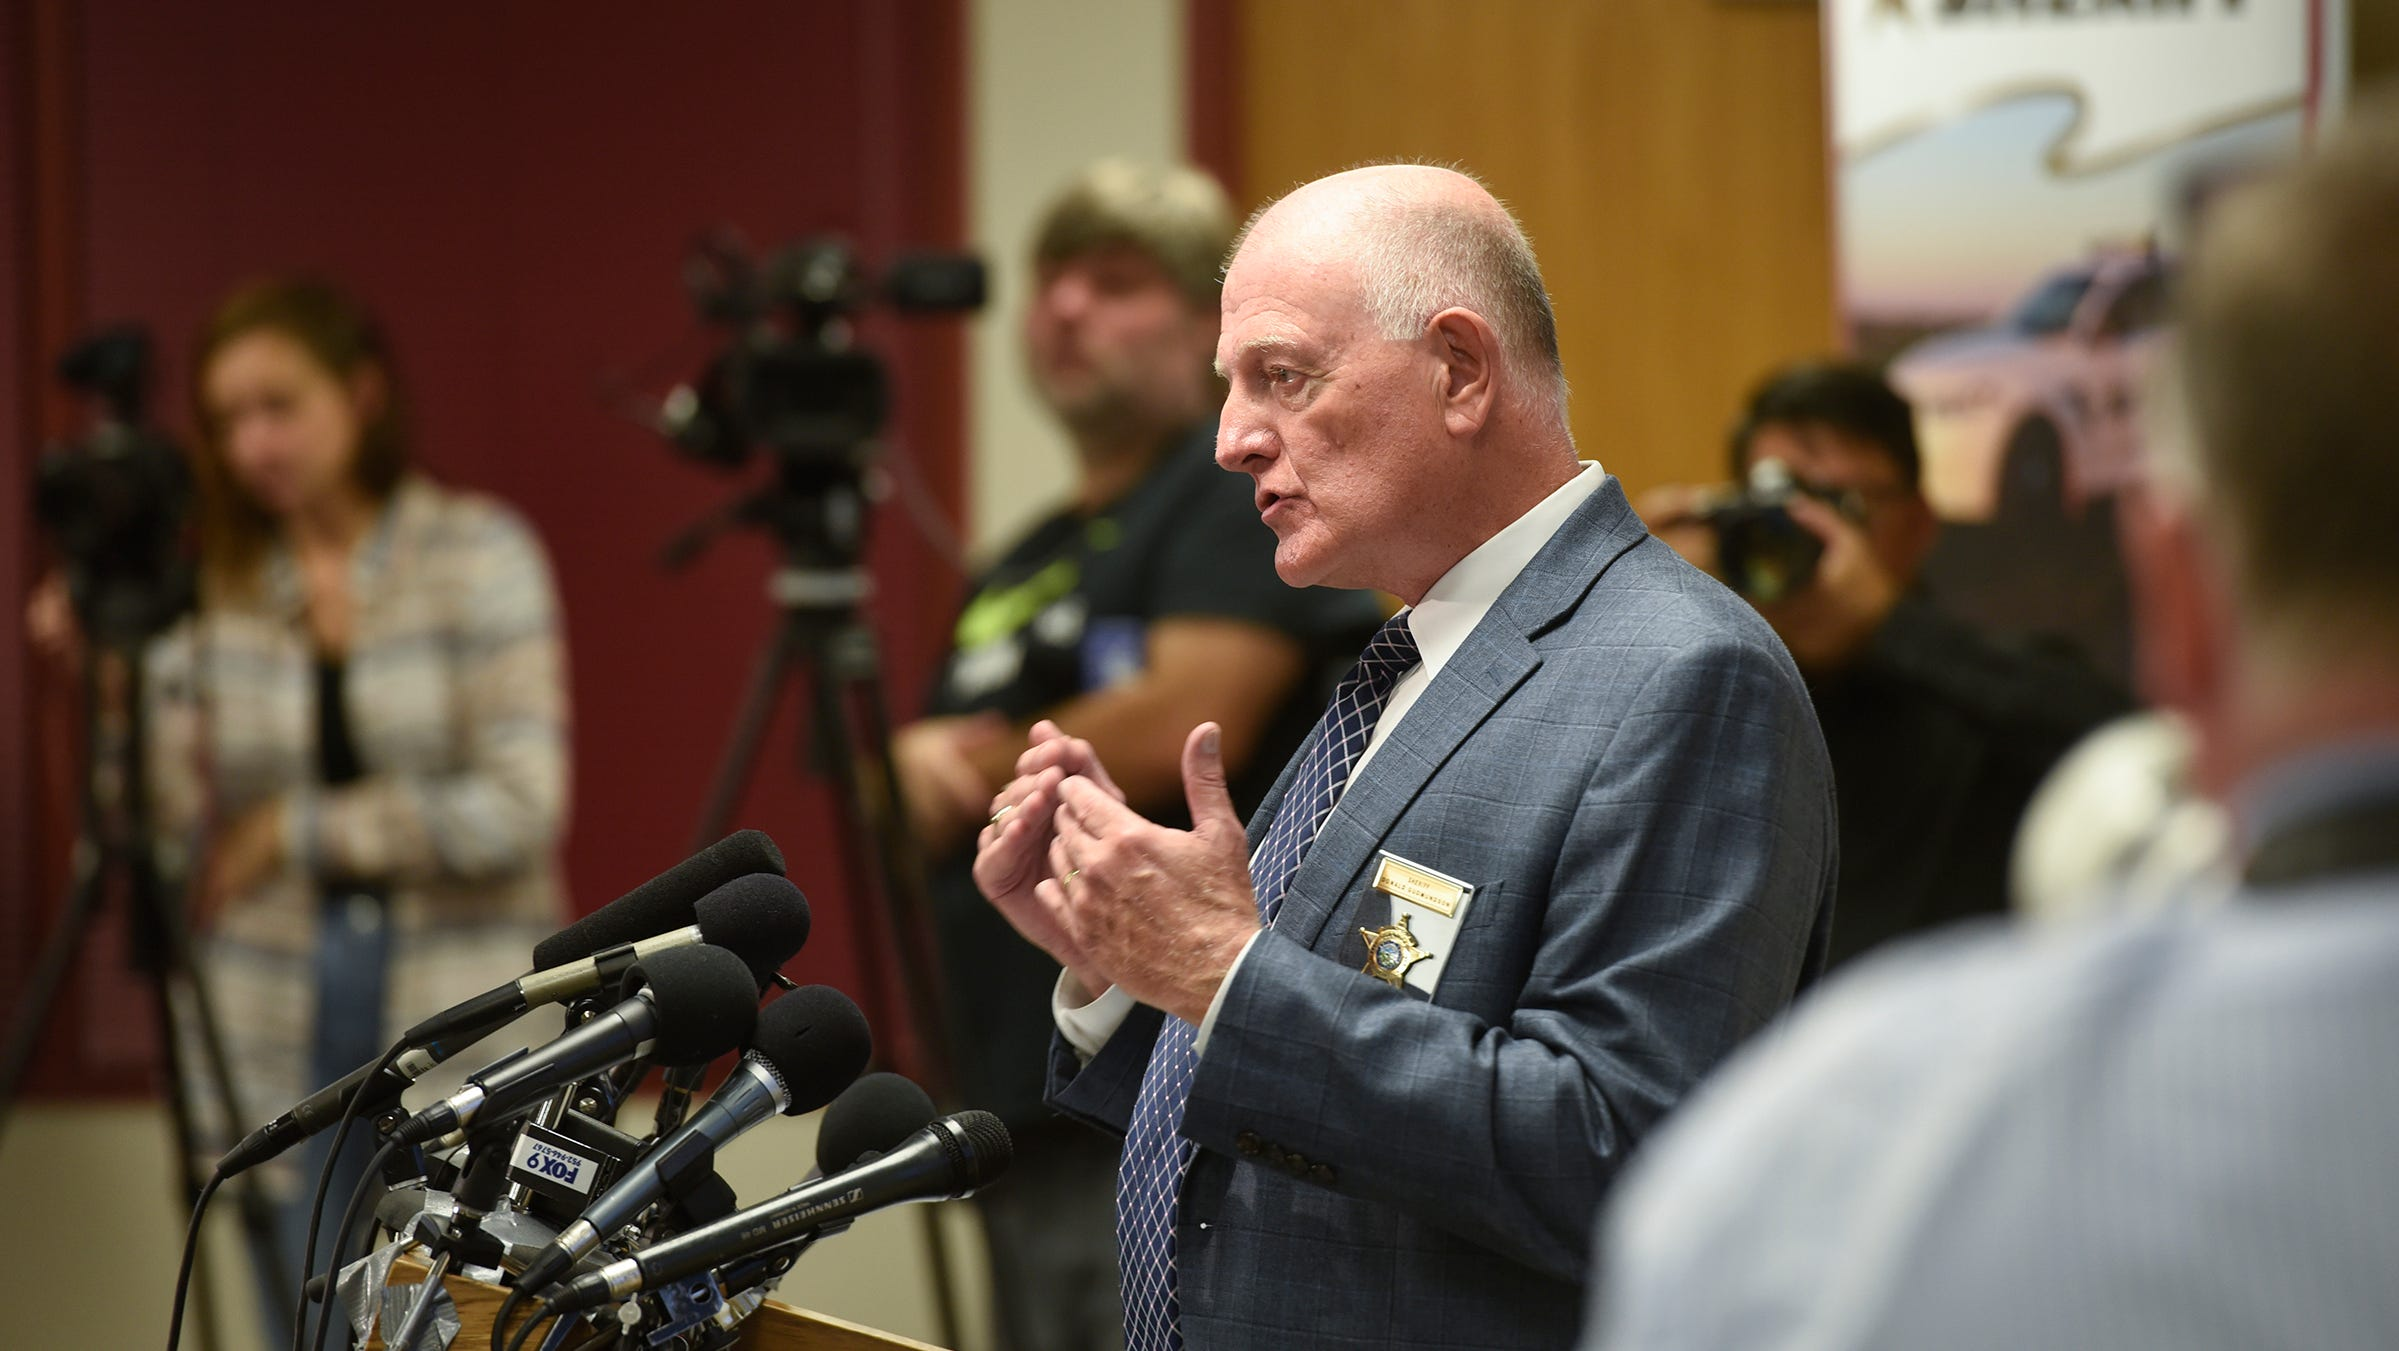 Stearns County Sheriff Don Gudmundson speaks during a press conference for the release of investigative files in the Jacob Wetterling case Thursday, Sept. 20, 2018, in St. Cloud.